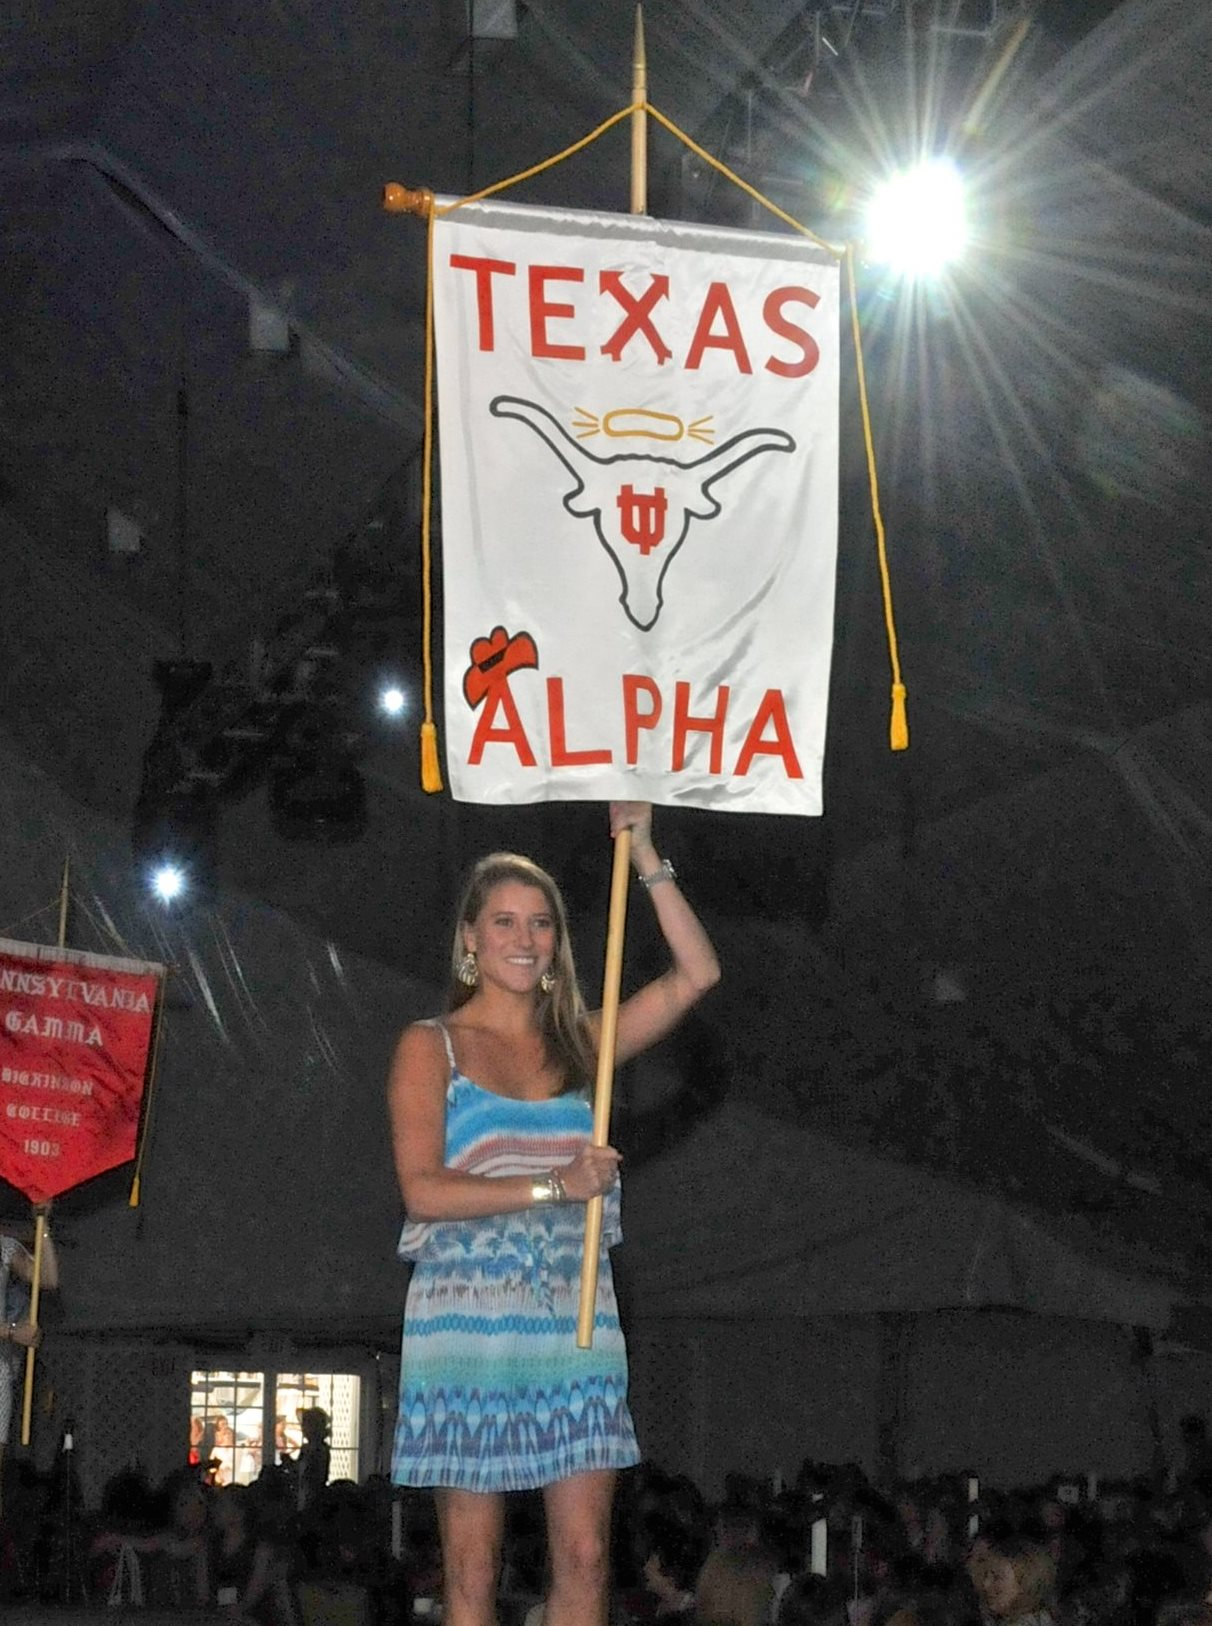 Texas Alpha image